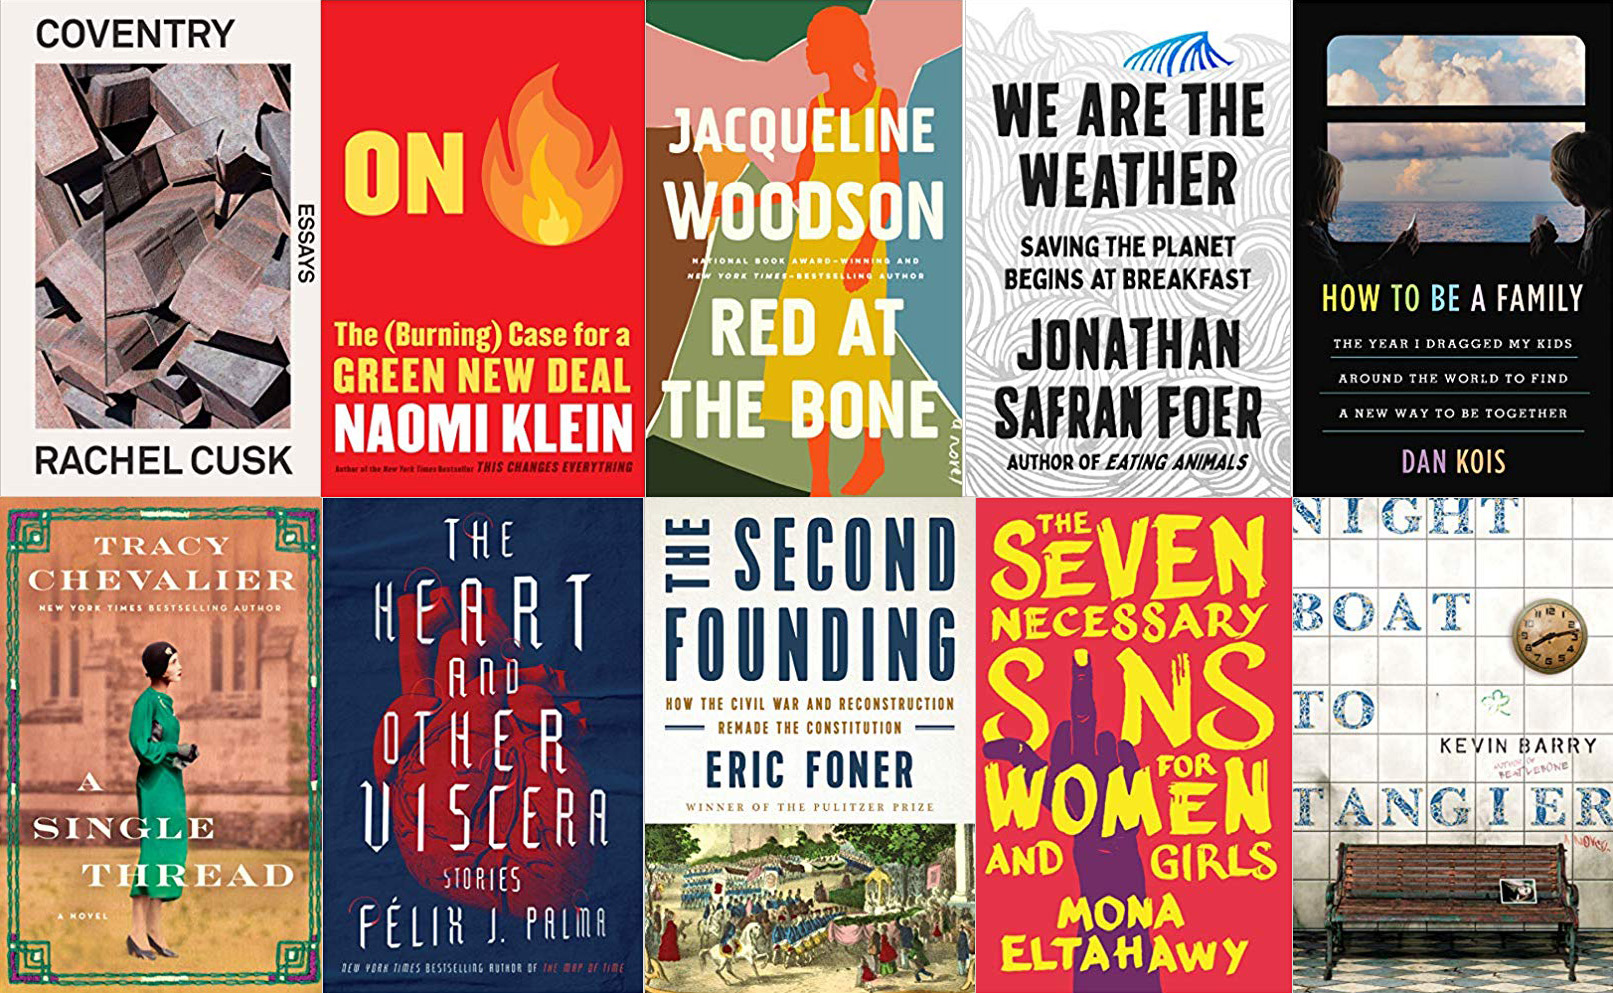 Tuesday New Release Day: Starring Cusk, Barry, Eltahawy, Foer, Klein, Kois, and More